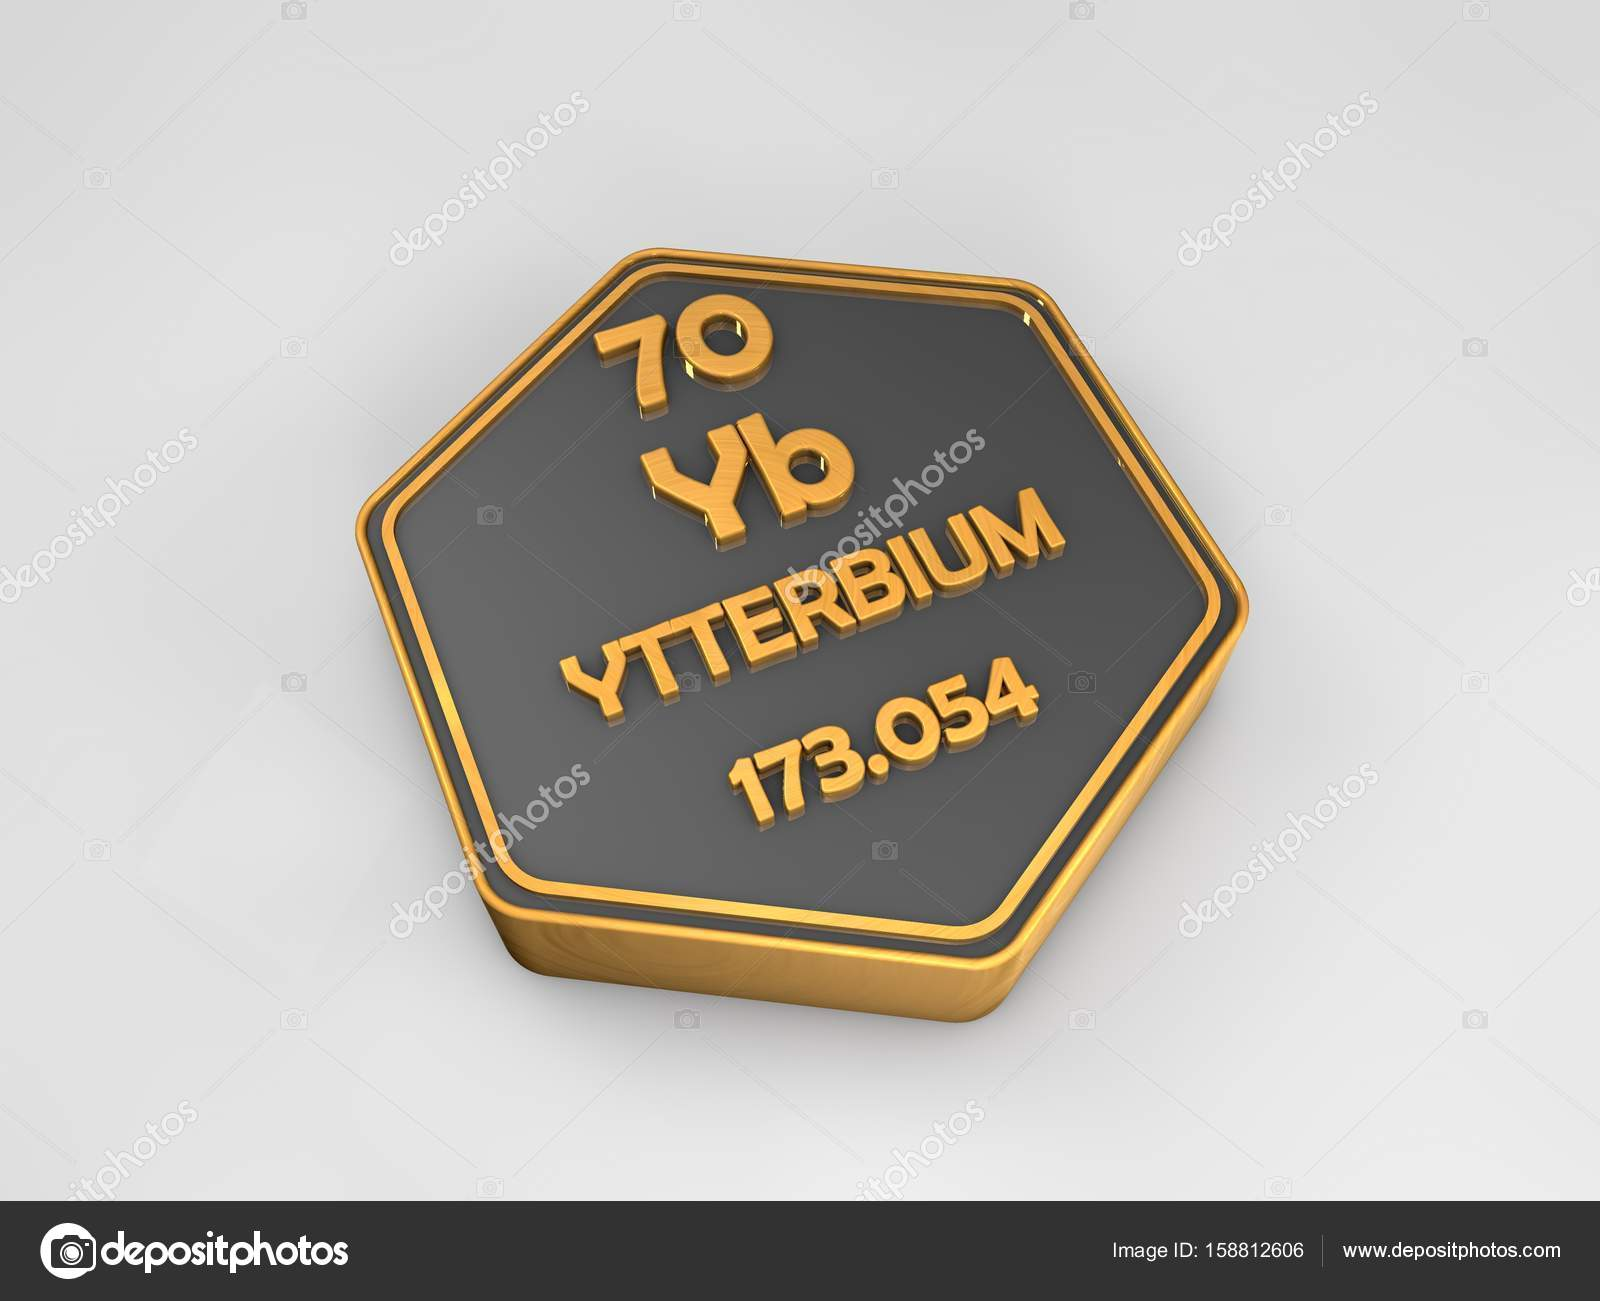 Ytterbium yb chemical element periodic table hexagonal shape 3d ytterbium yb chemical element periodic table hexagonal shape 3d render stock photo urtaz Images